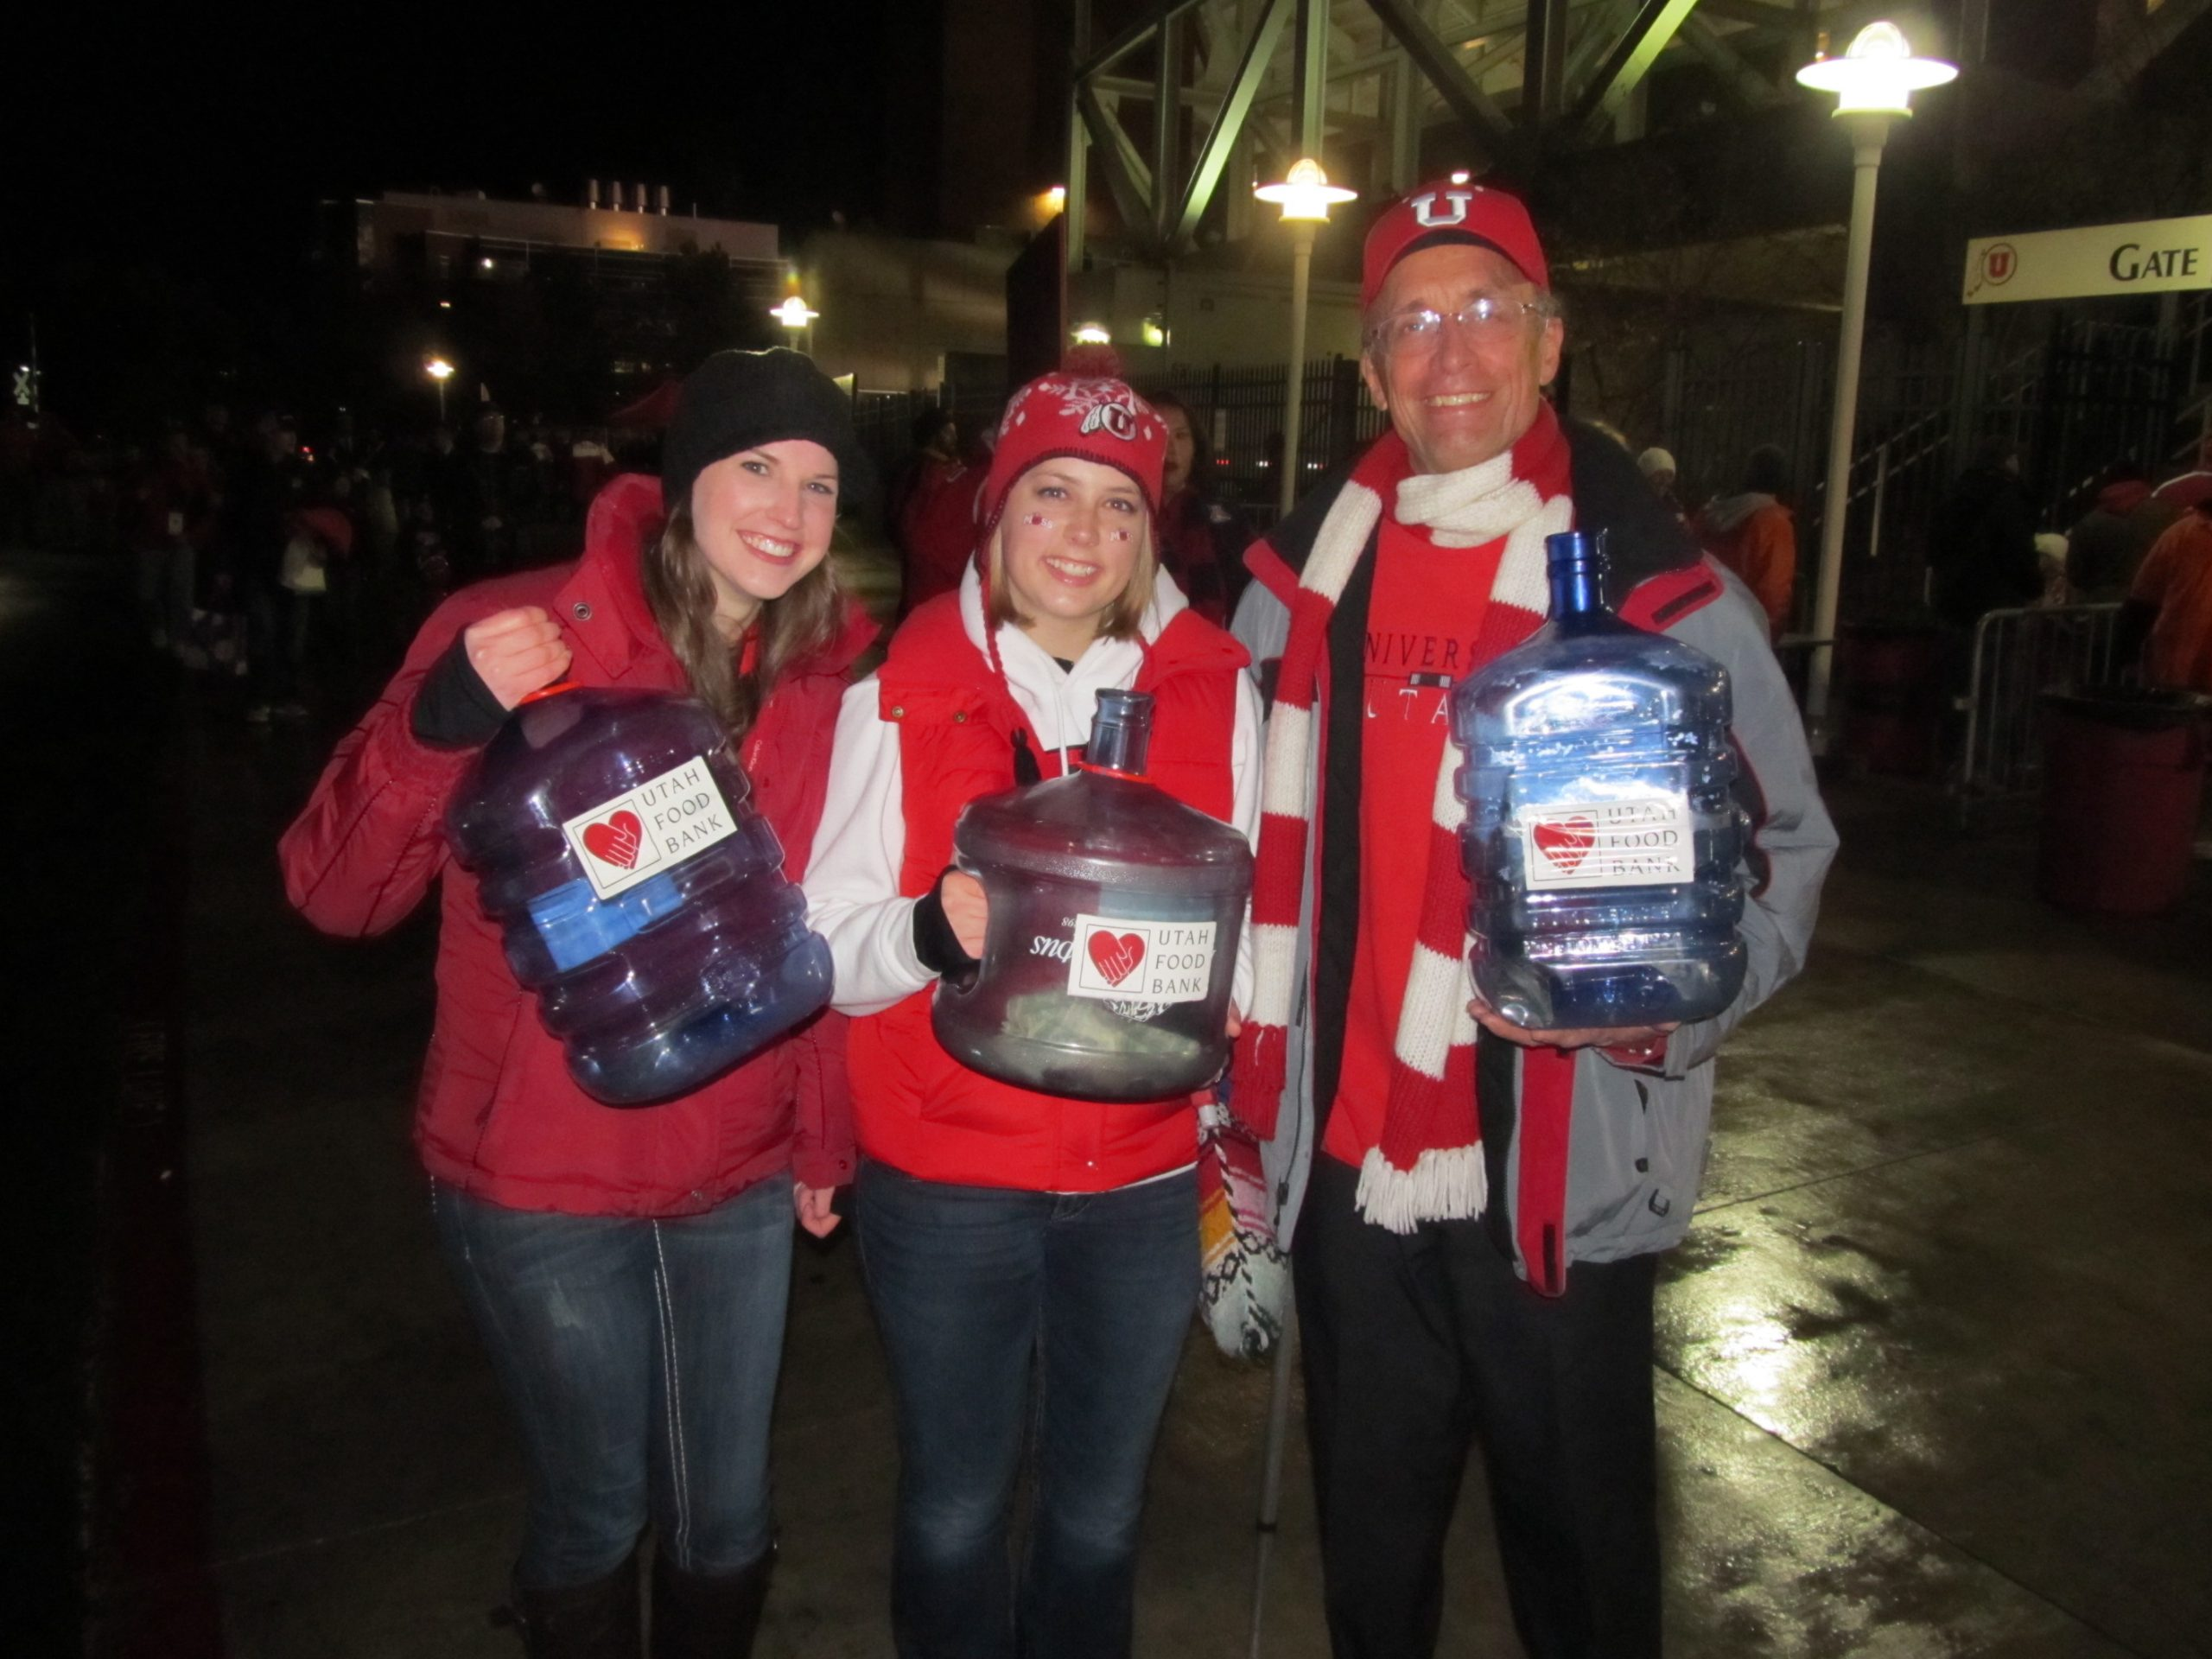 Shelbie Whitchurch, Rachel Kennedy and Steve Gunn collecting donations for food drive.